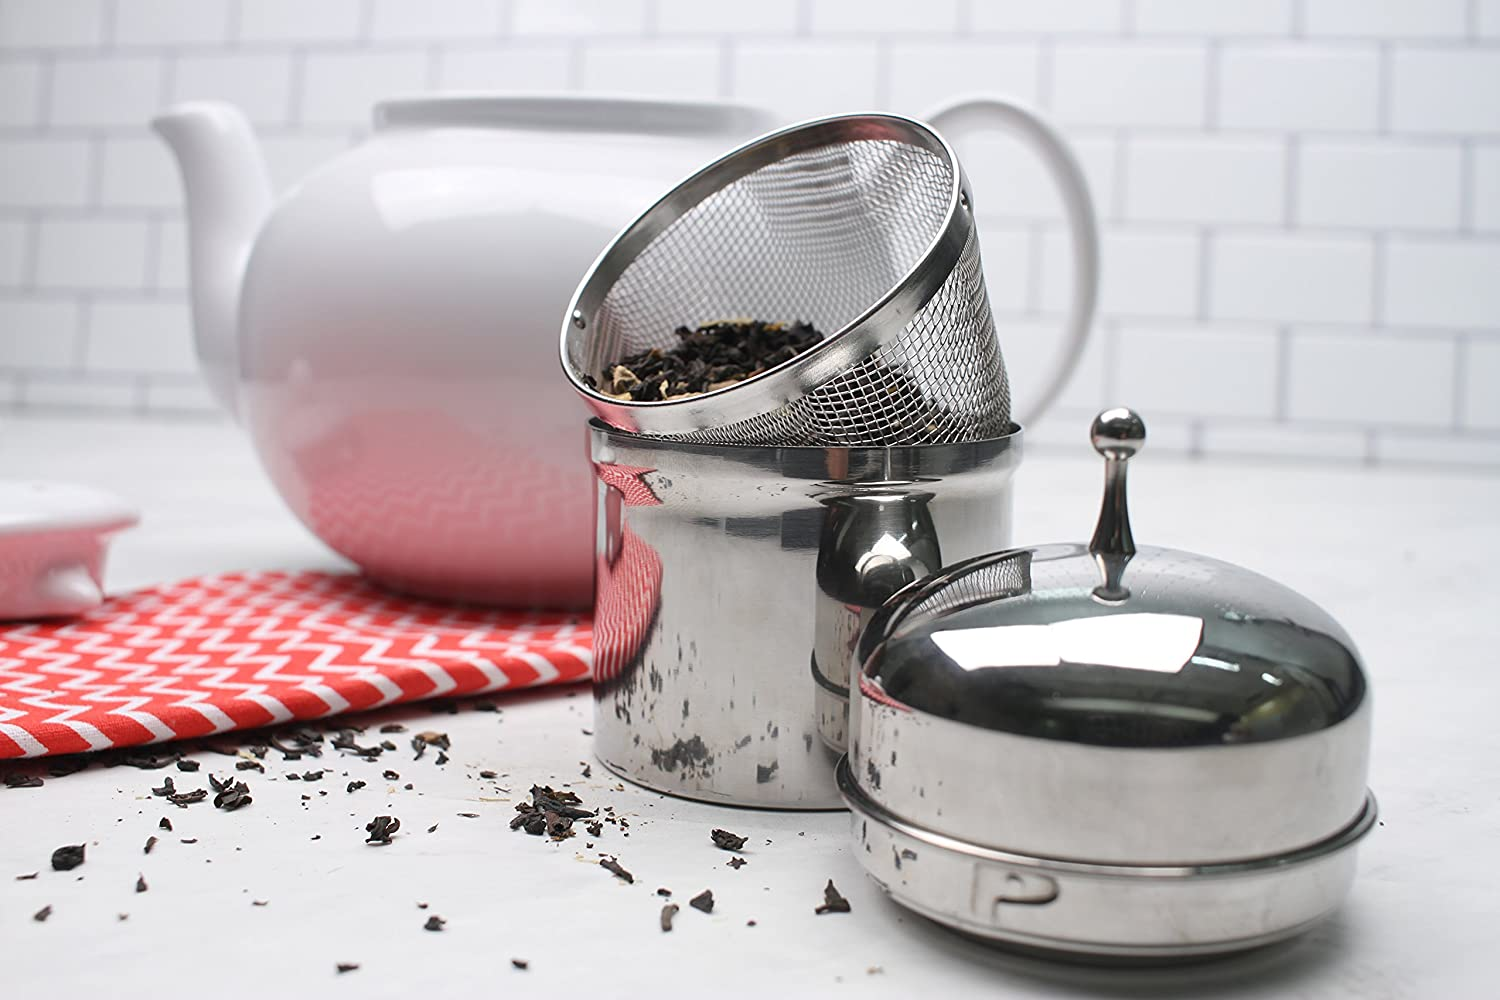 1//2-Cup capacity RSVP Endurance Stainless Steel Floating Spice Ball Infuser